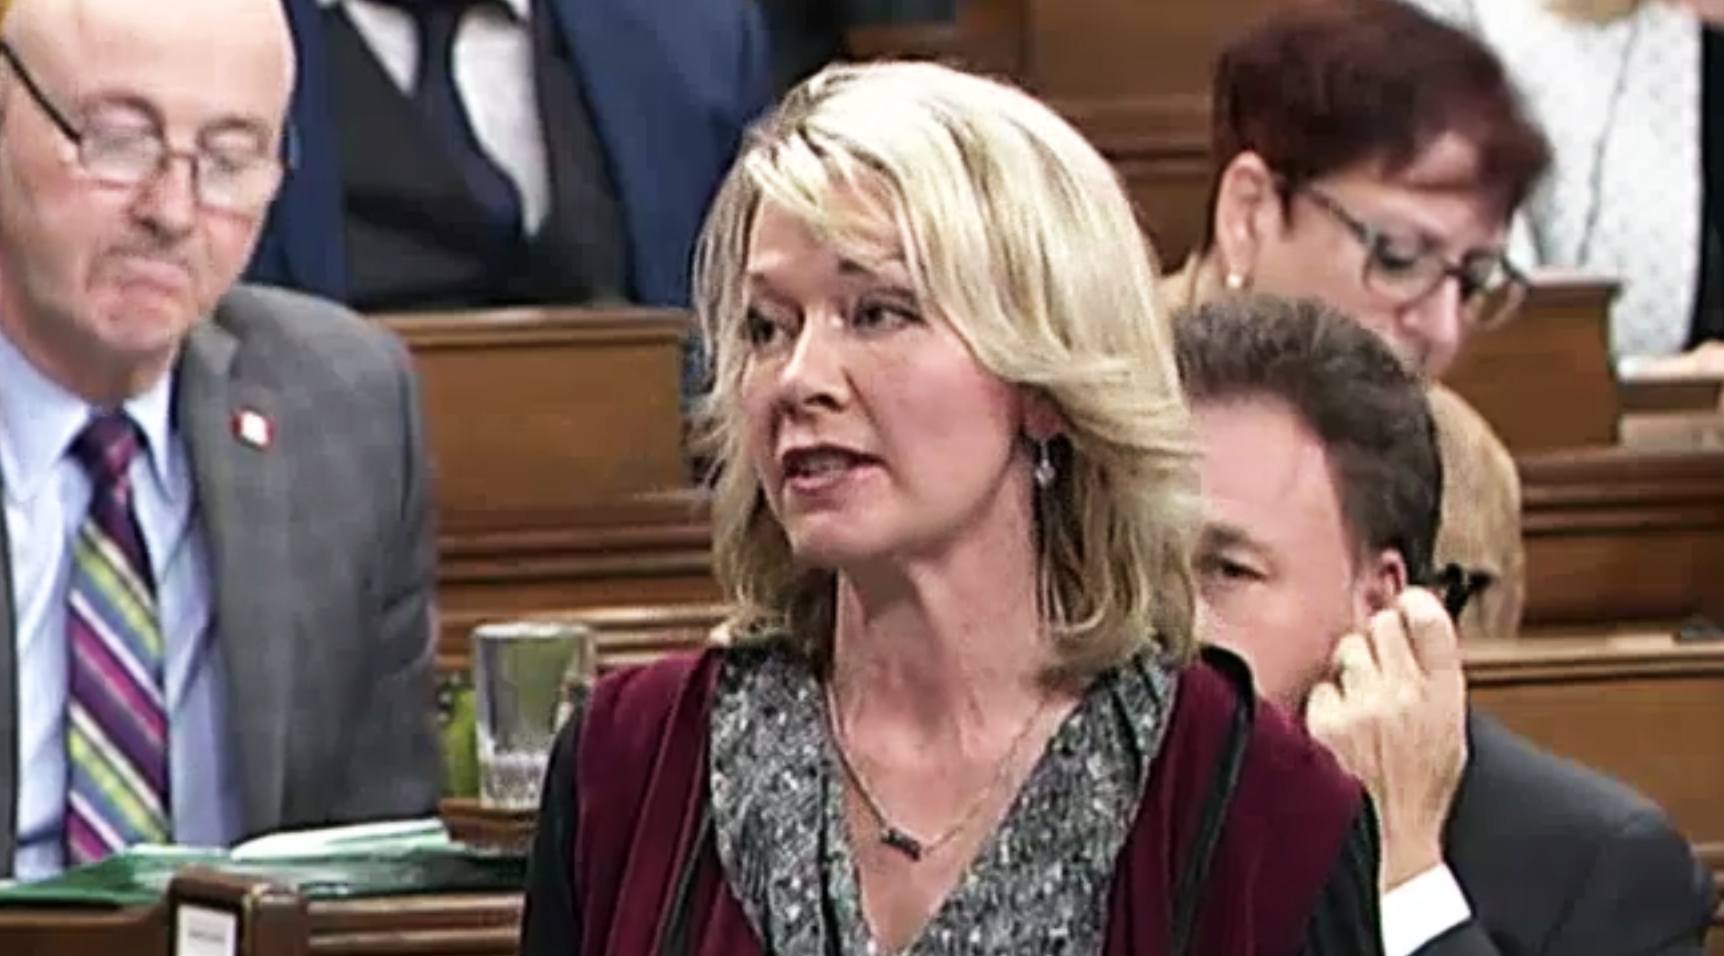 Conservative MP Candice Bergen in the House of Commons (CPAC)